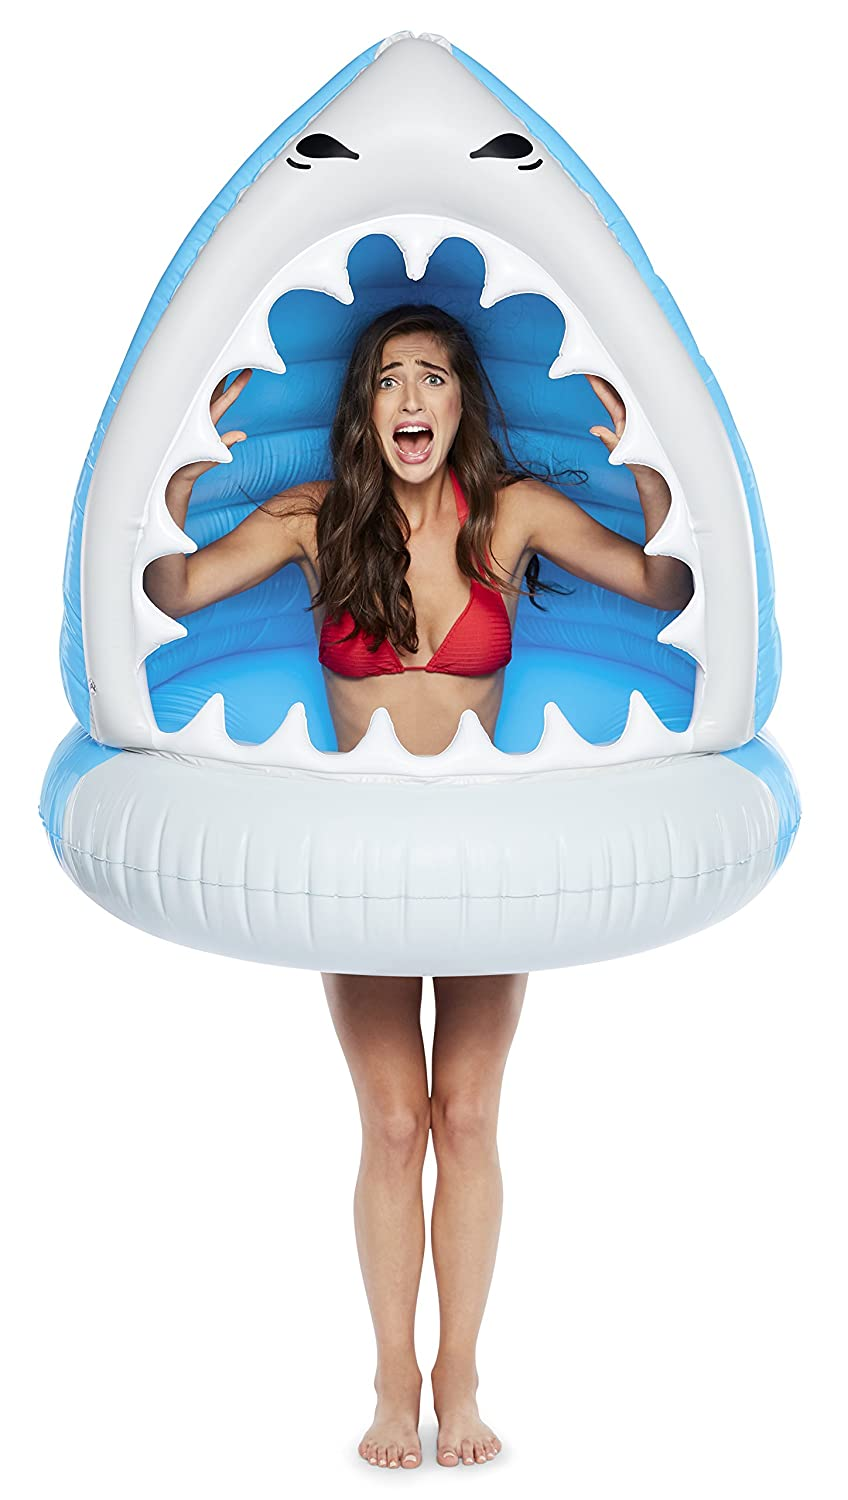 BigMouth Inc. Giant XL Pool Floats, Funny Inflatable Vinyl Summer Pool or Beach Toy, Patch Kit Included (XL Shark)